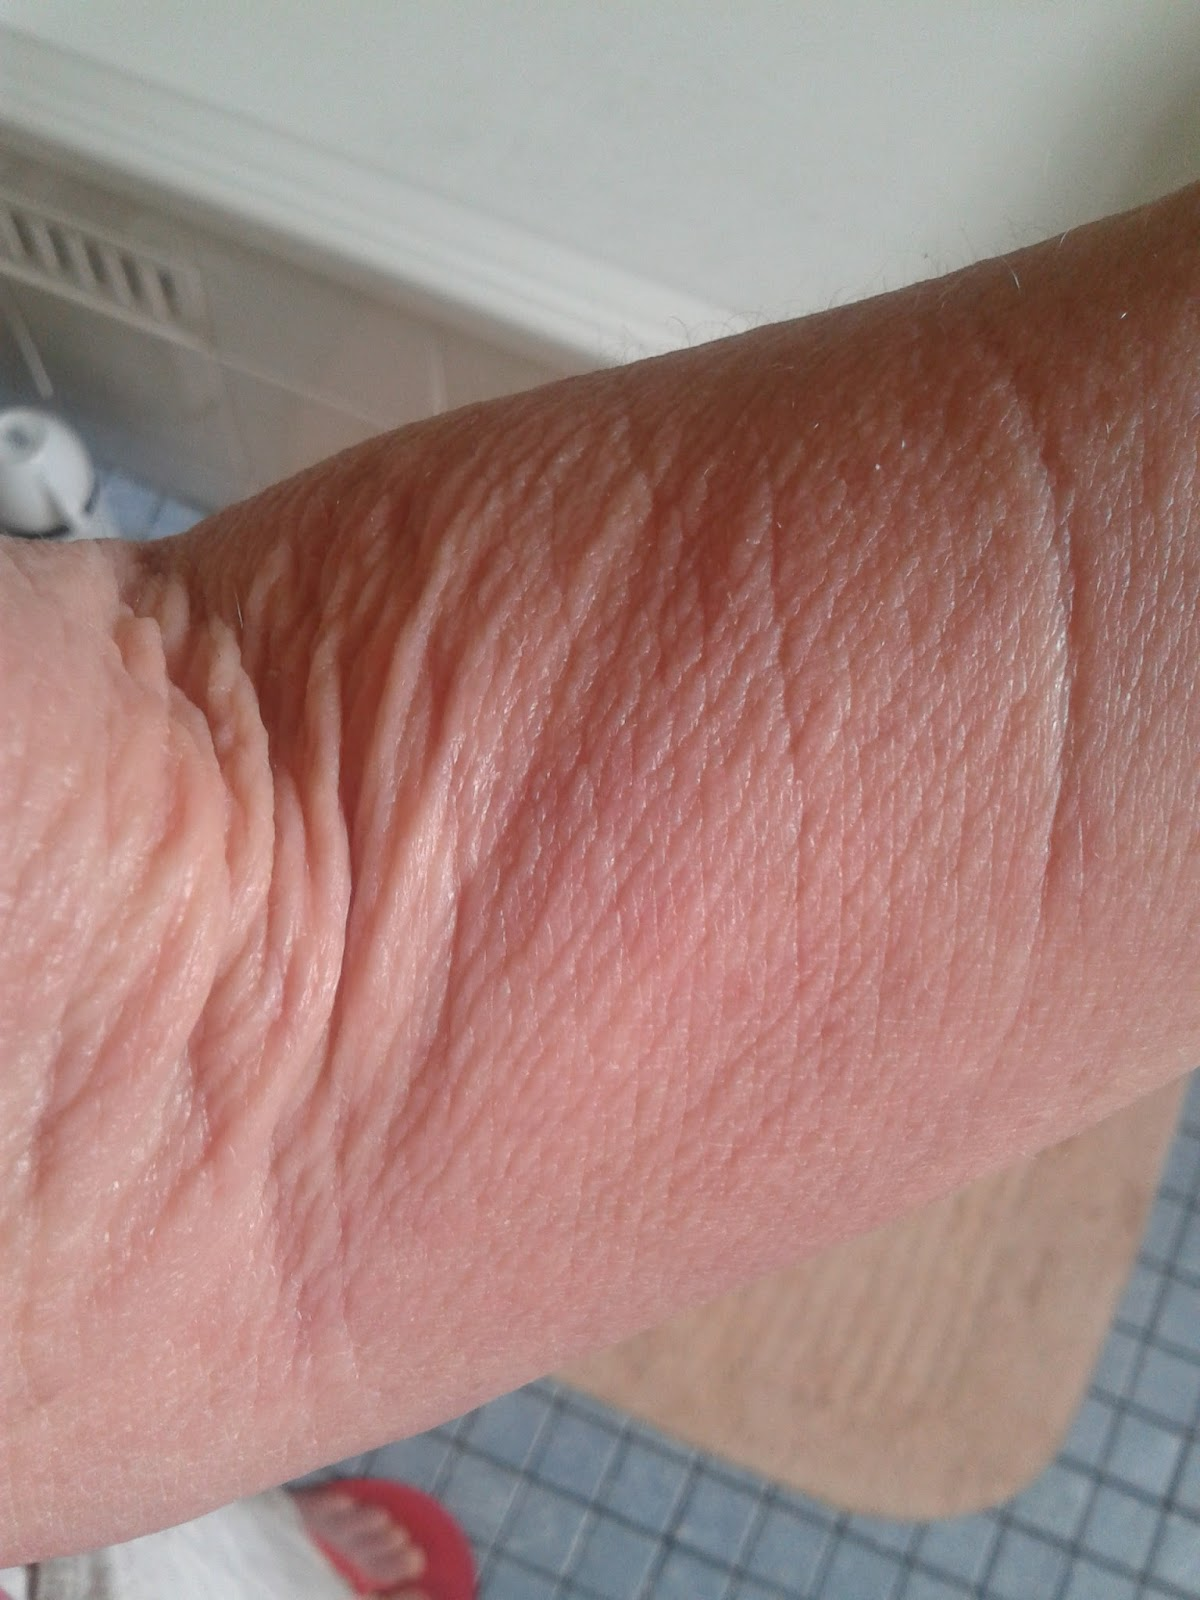 Extremely itchy - cafenews info